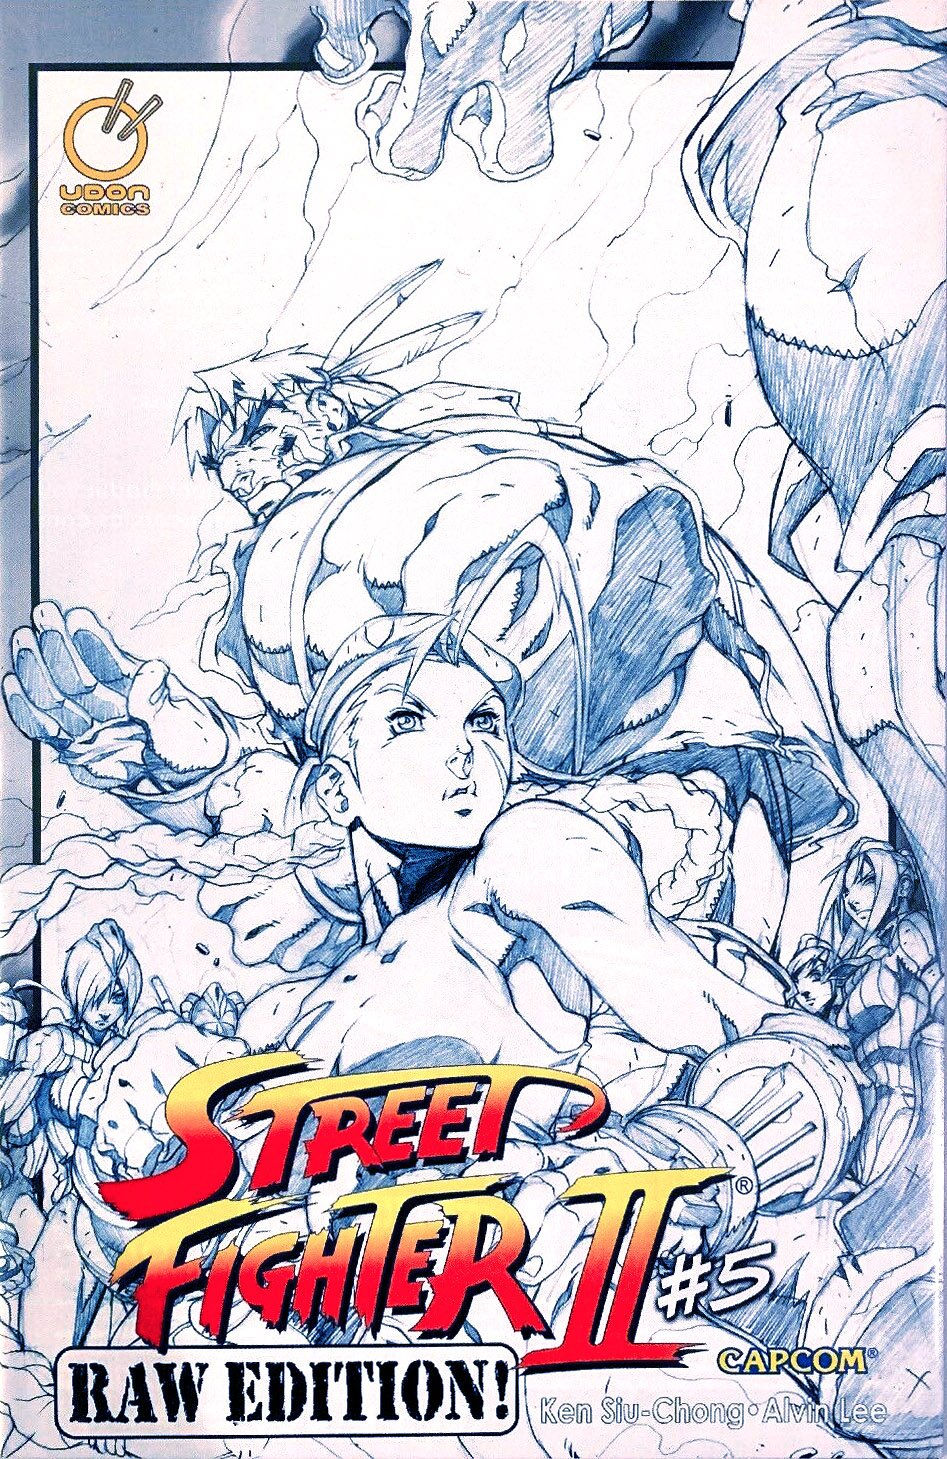 Street Fighter II Issue 5 (October 2006) (Raw Edition)